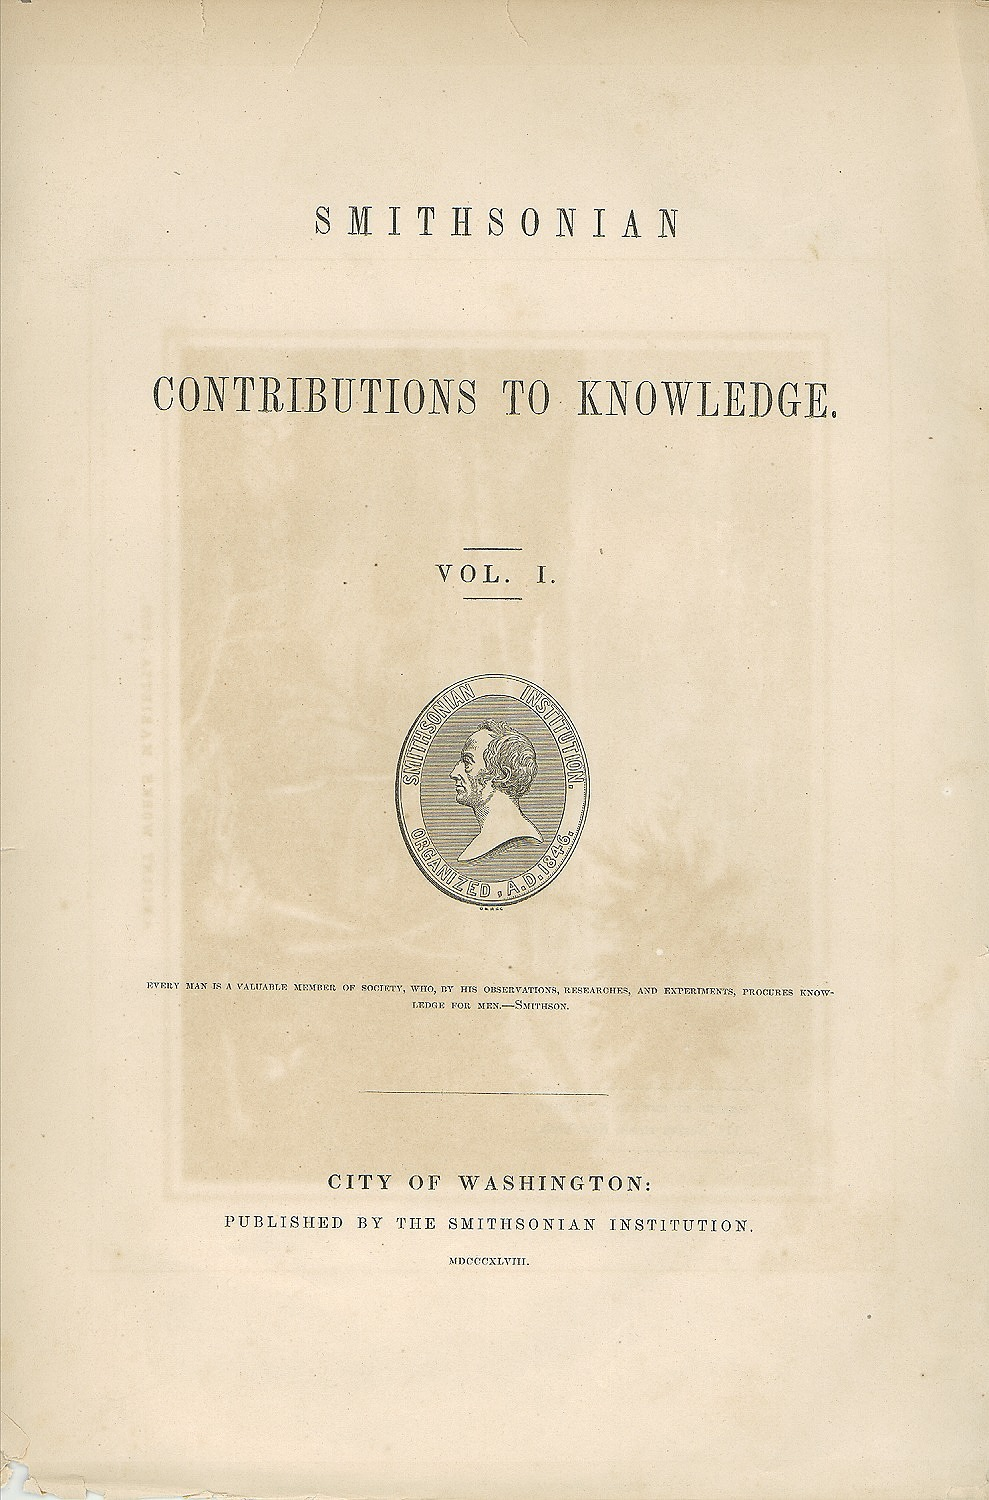 Image is cover of Smithsonian Contributions to Knowledge, volume 1, Smithsonian Institution Archives, negative number SIA2011-0512.